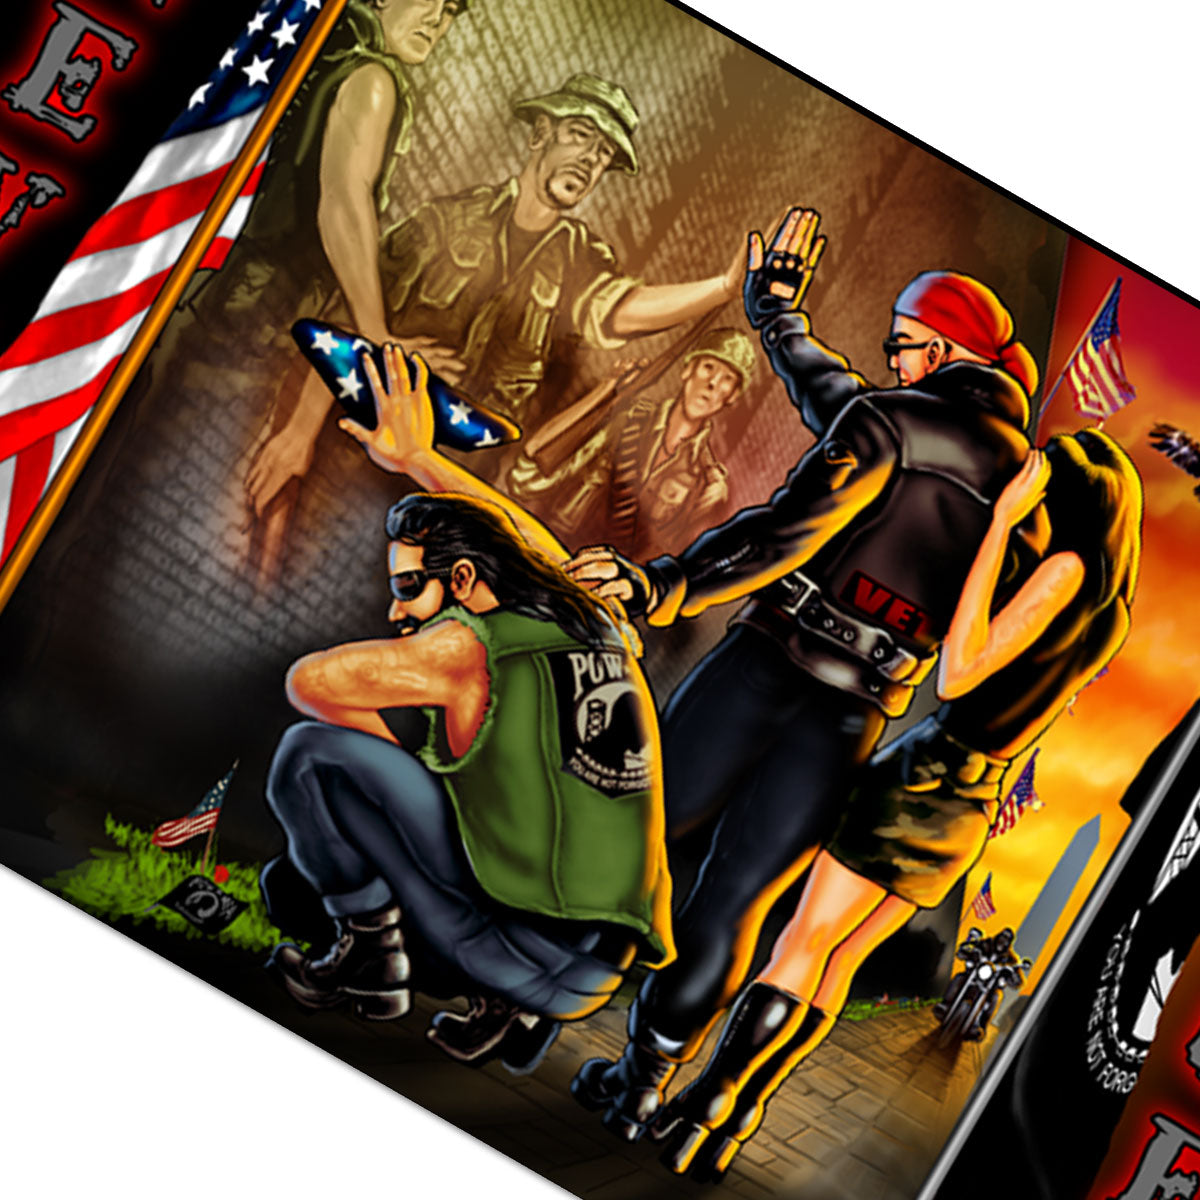 Hot Leathers Vietnam Wall Flag